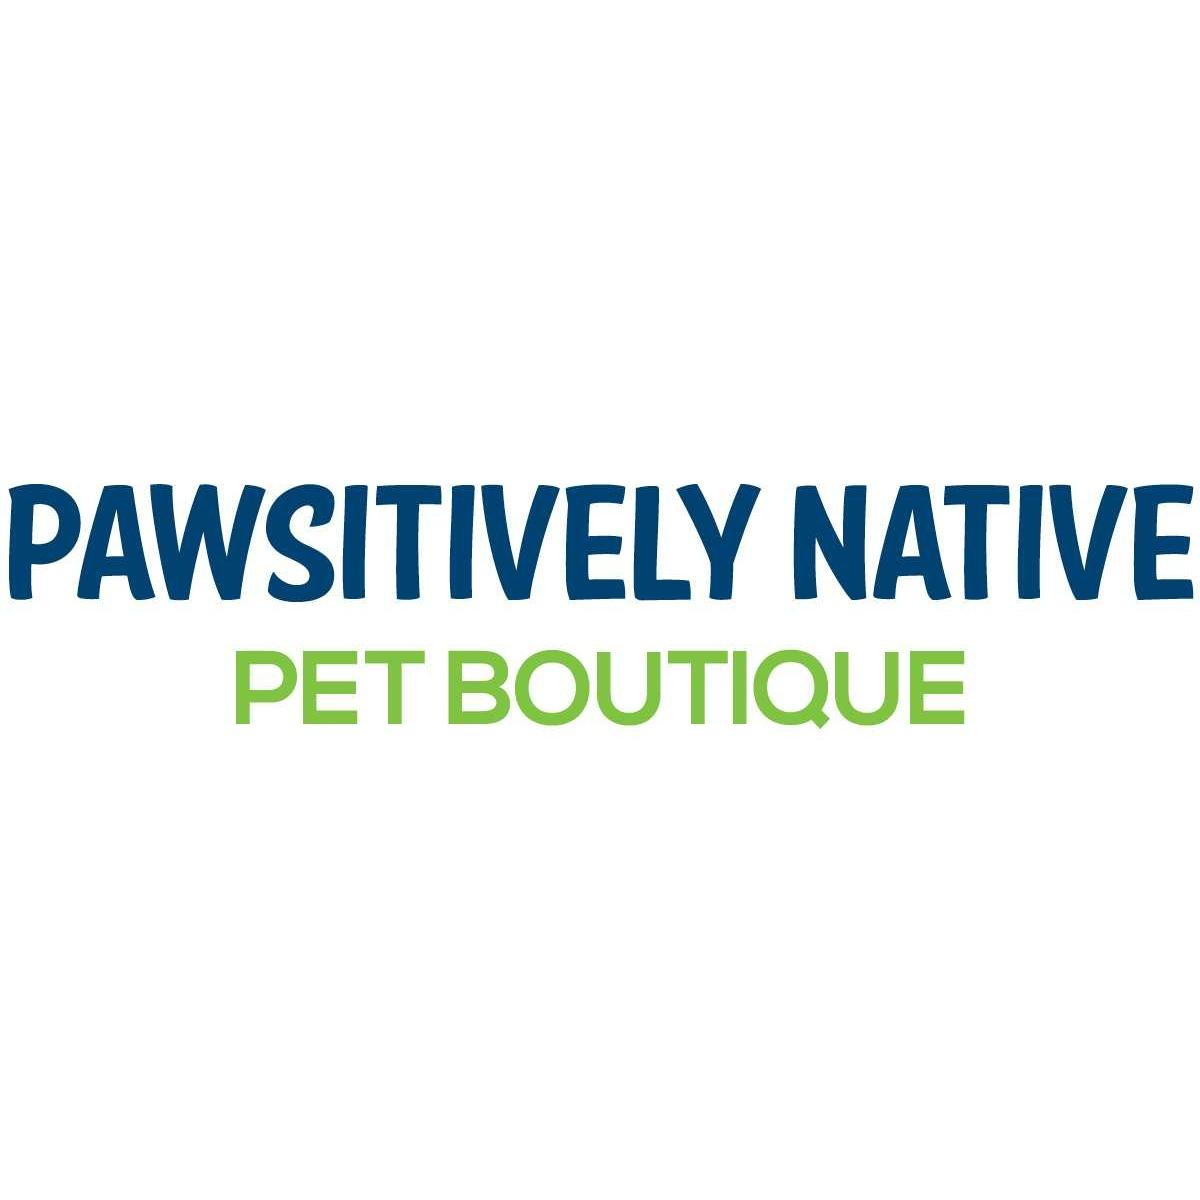 Pawsitively Native